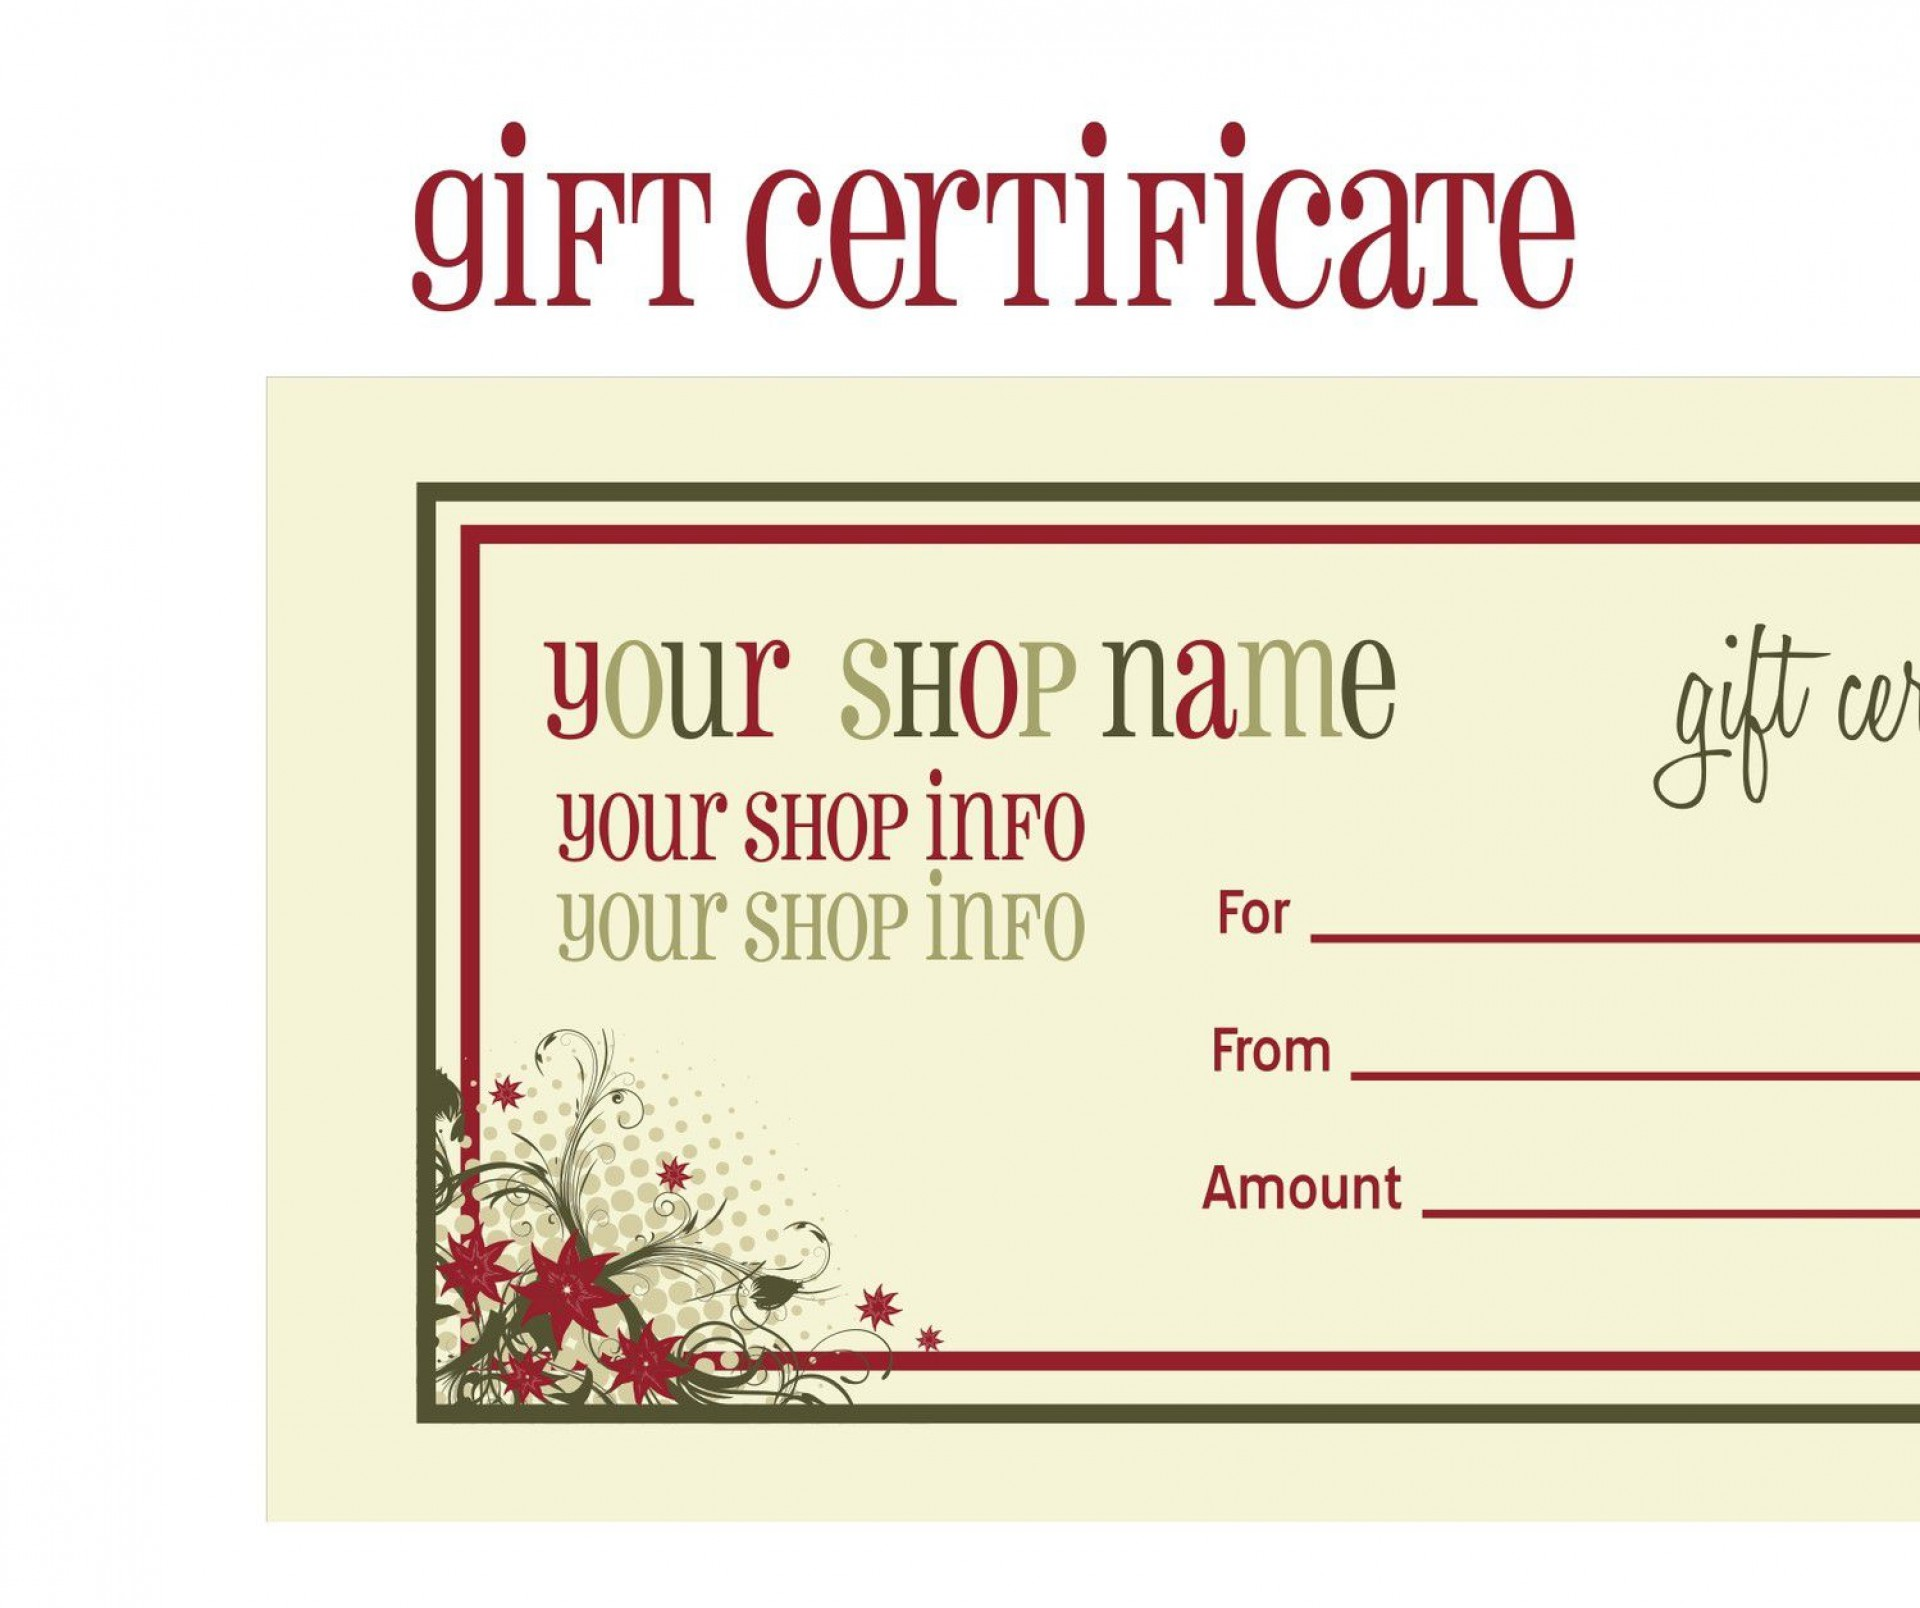 009 Wondrou Template For Christma Gift Certificate Free Image  Voucher Uk Editable Download Microsoft Word1920